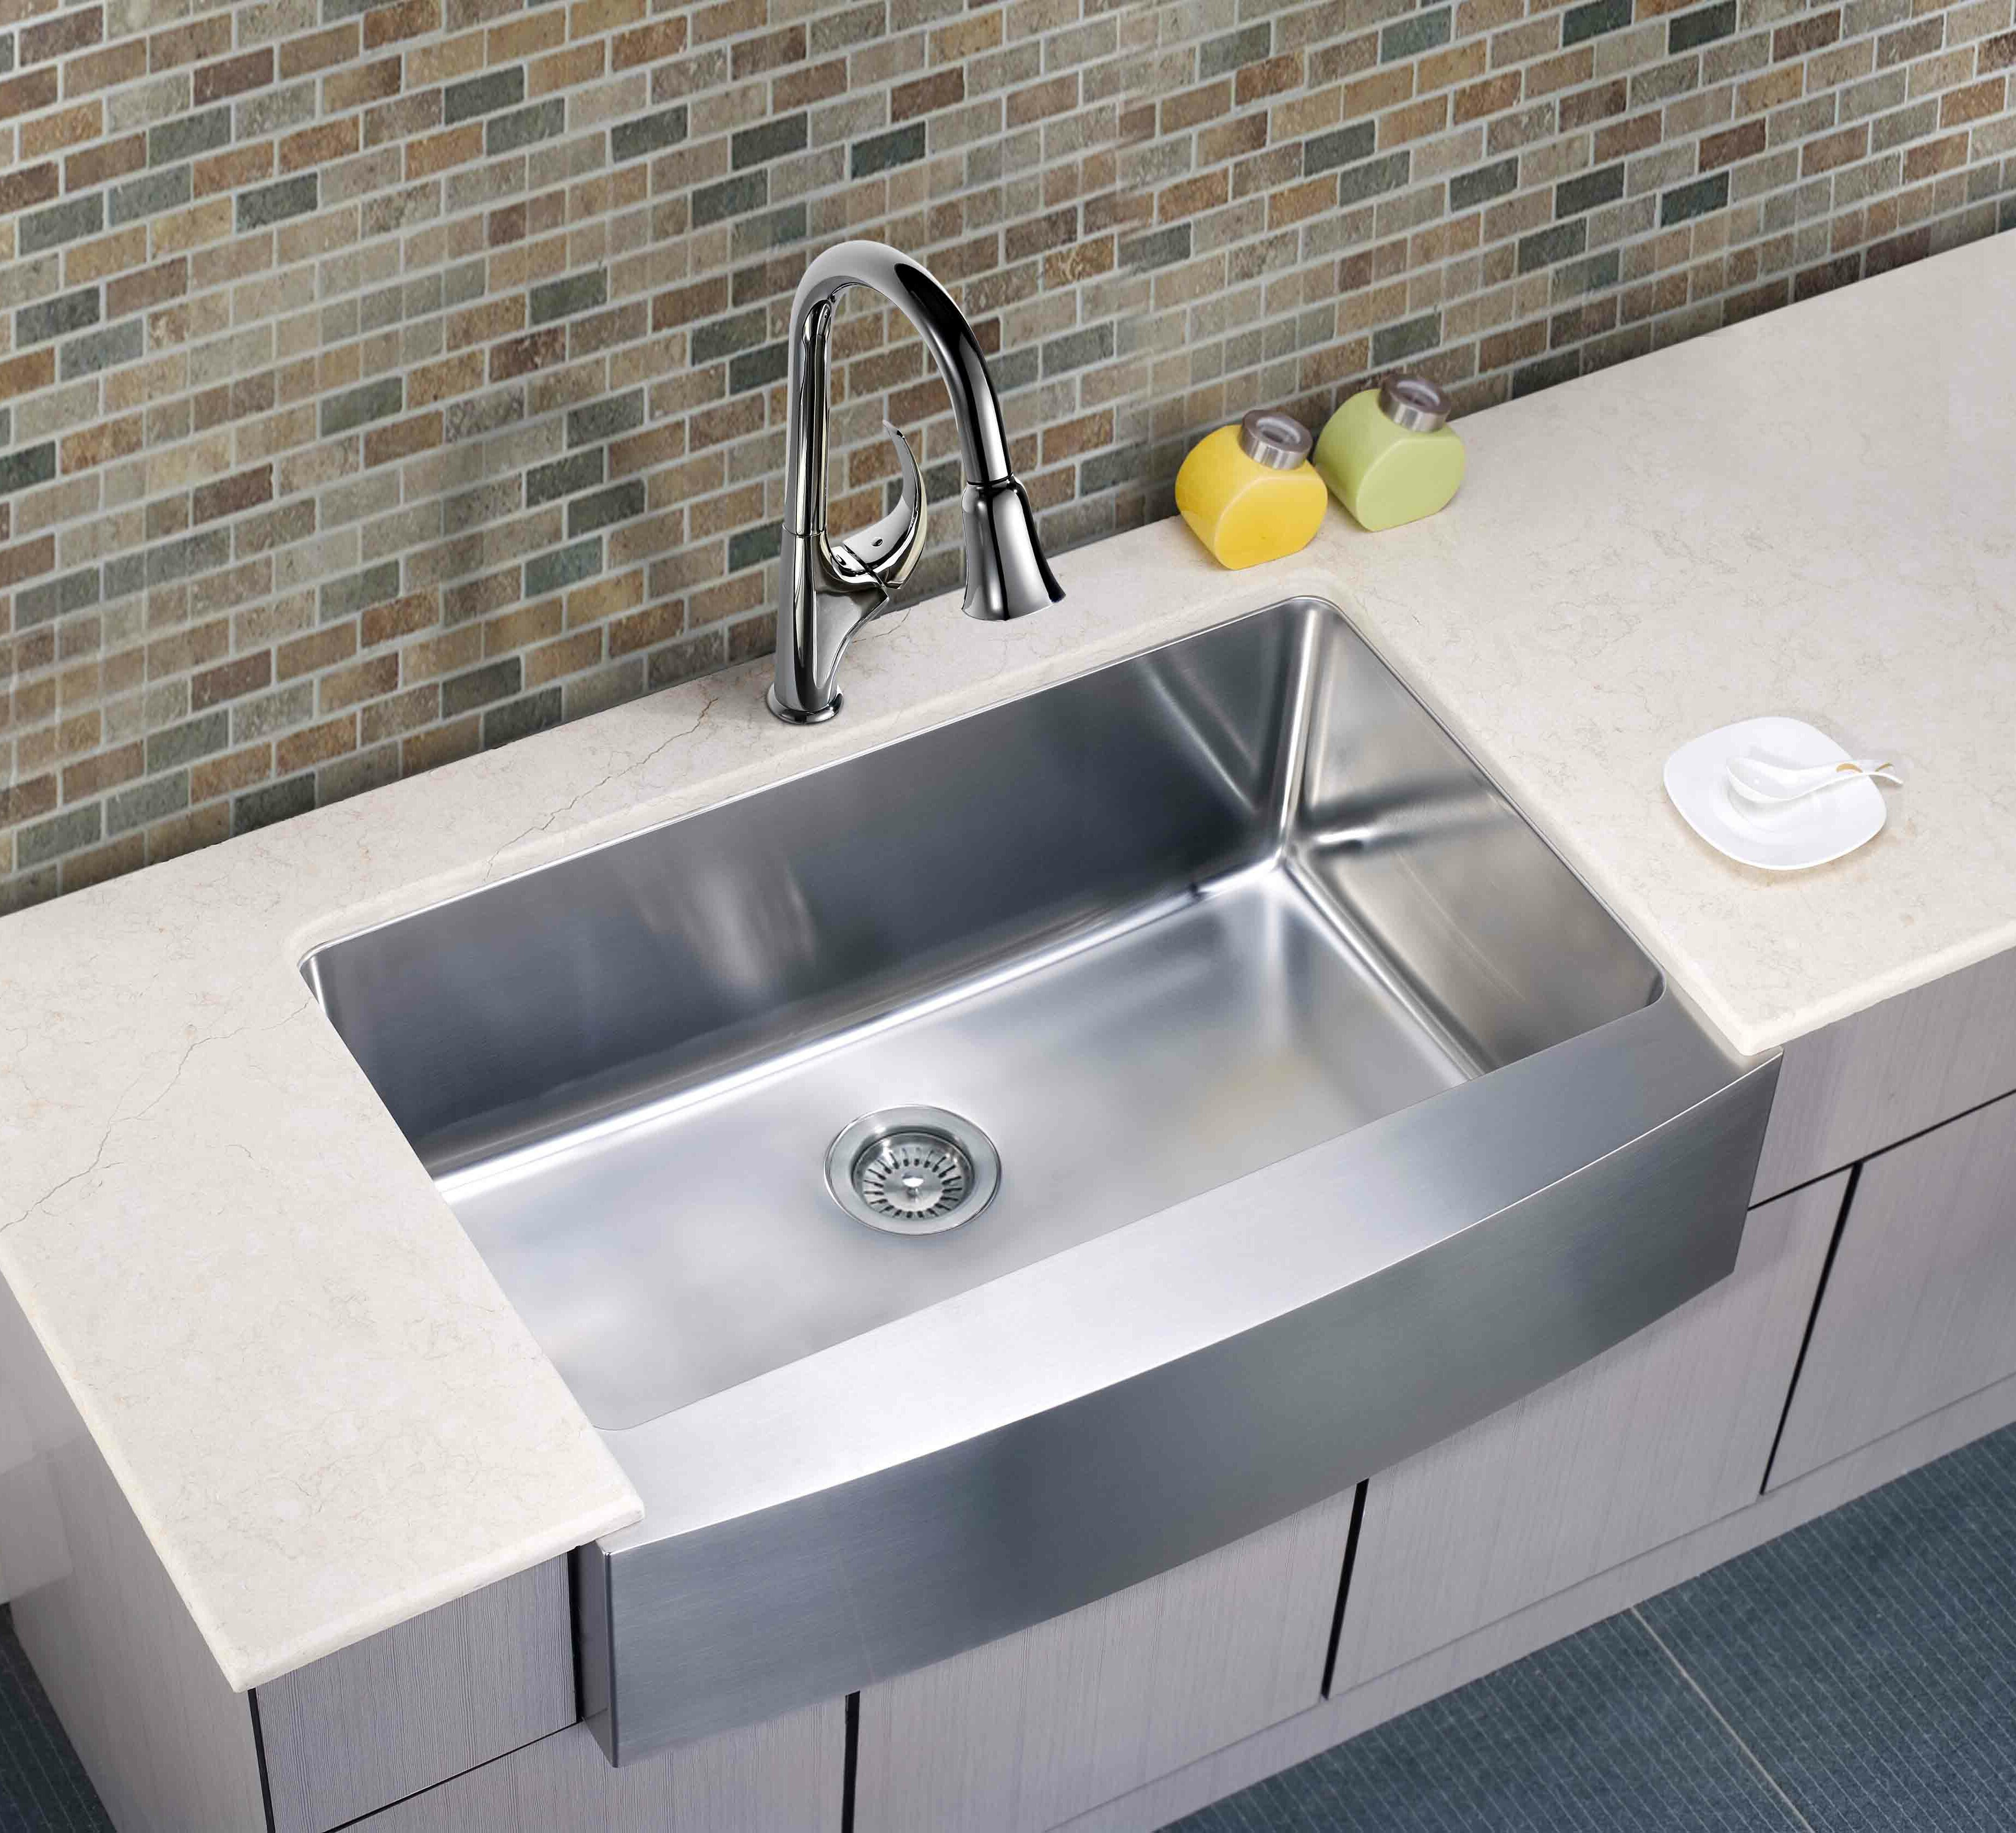 Single Bowl Kitchen Sink 33x22